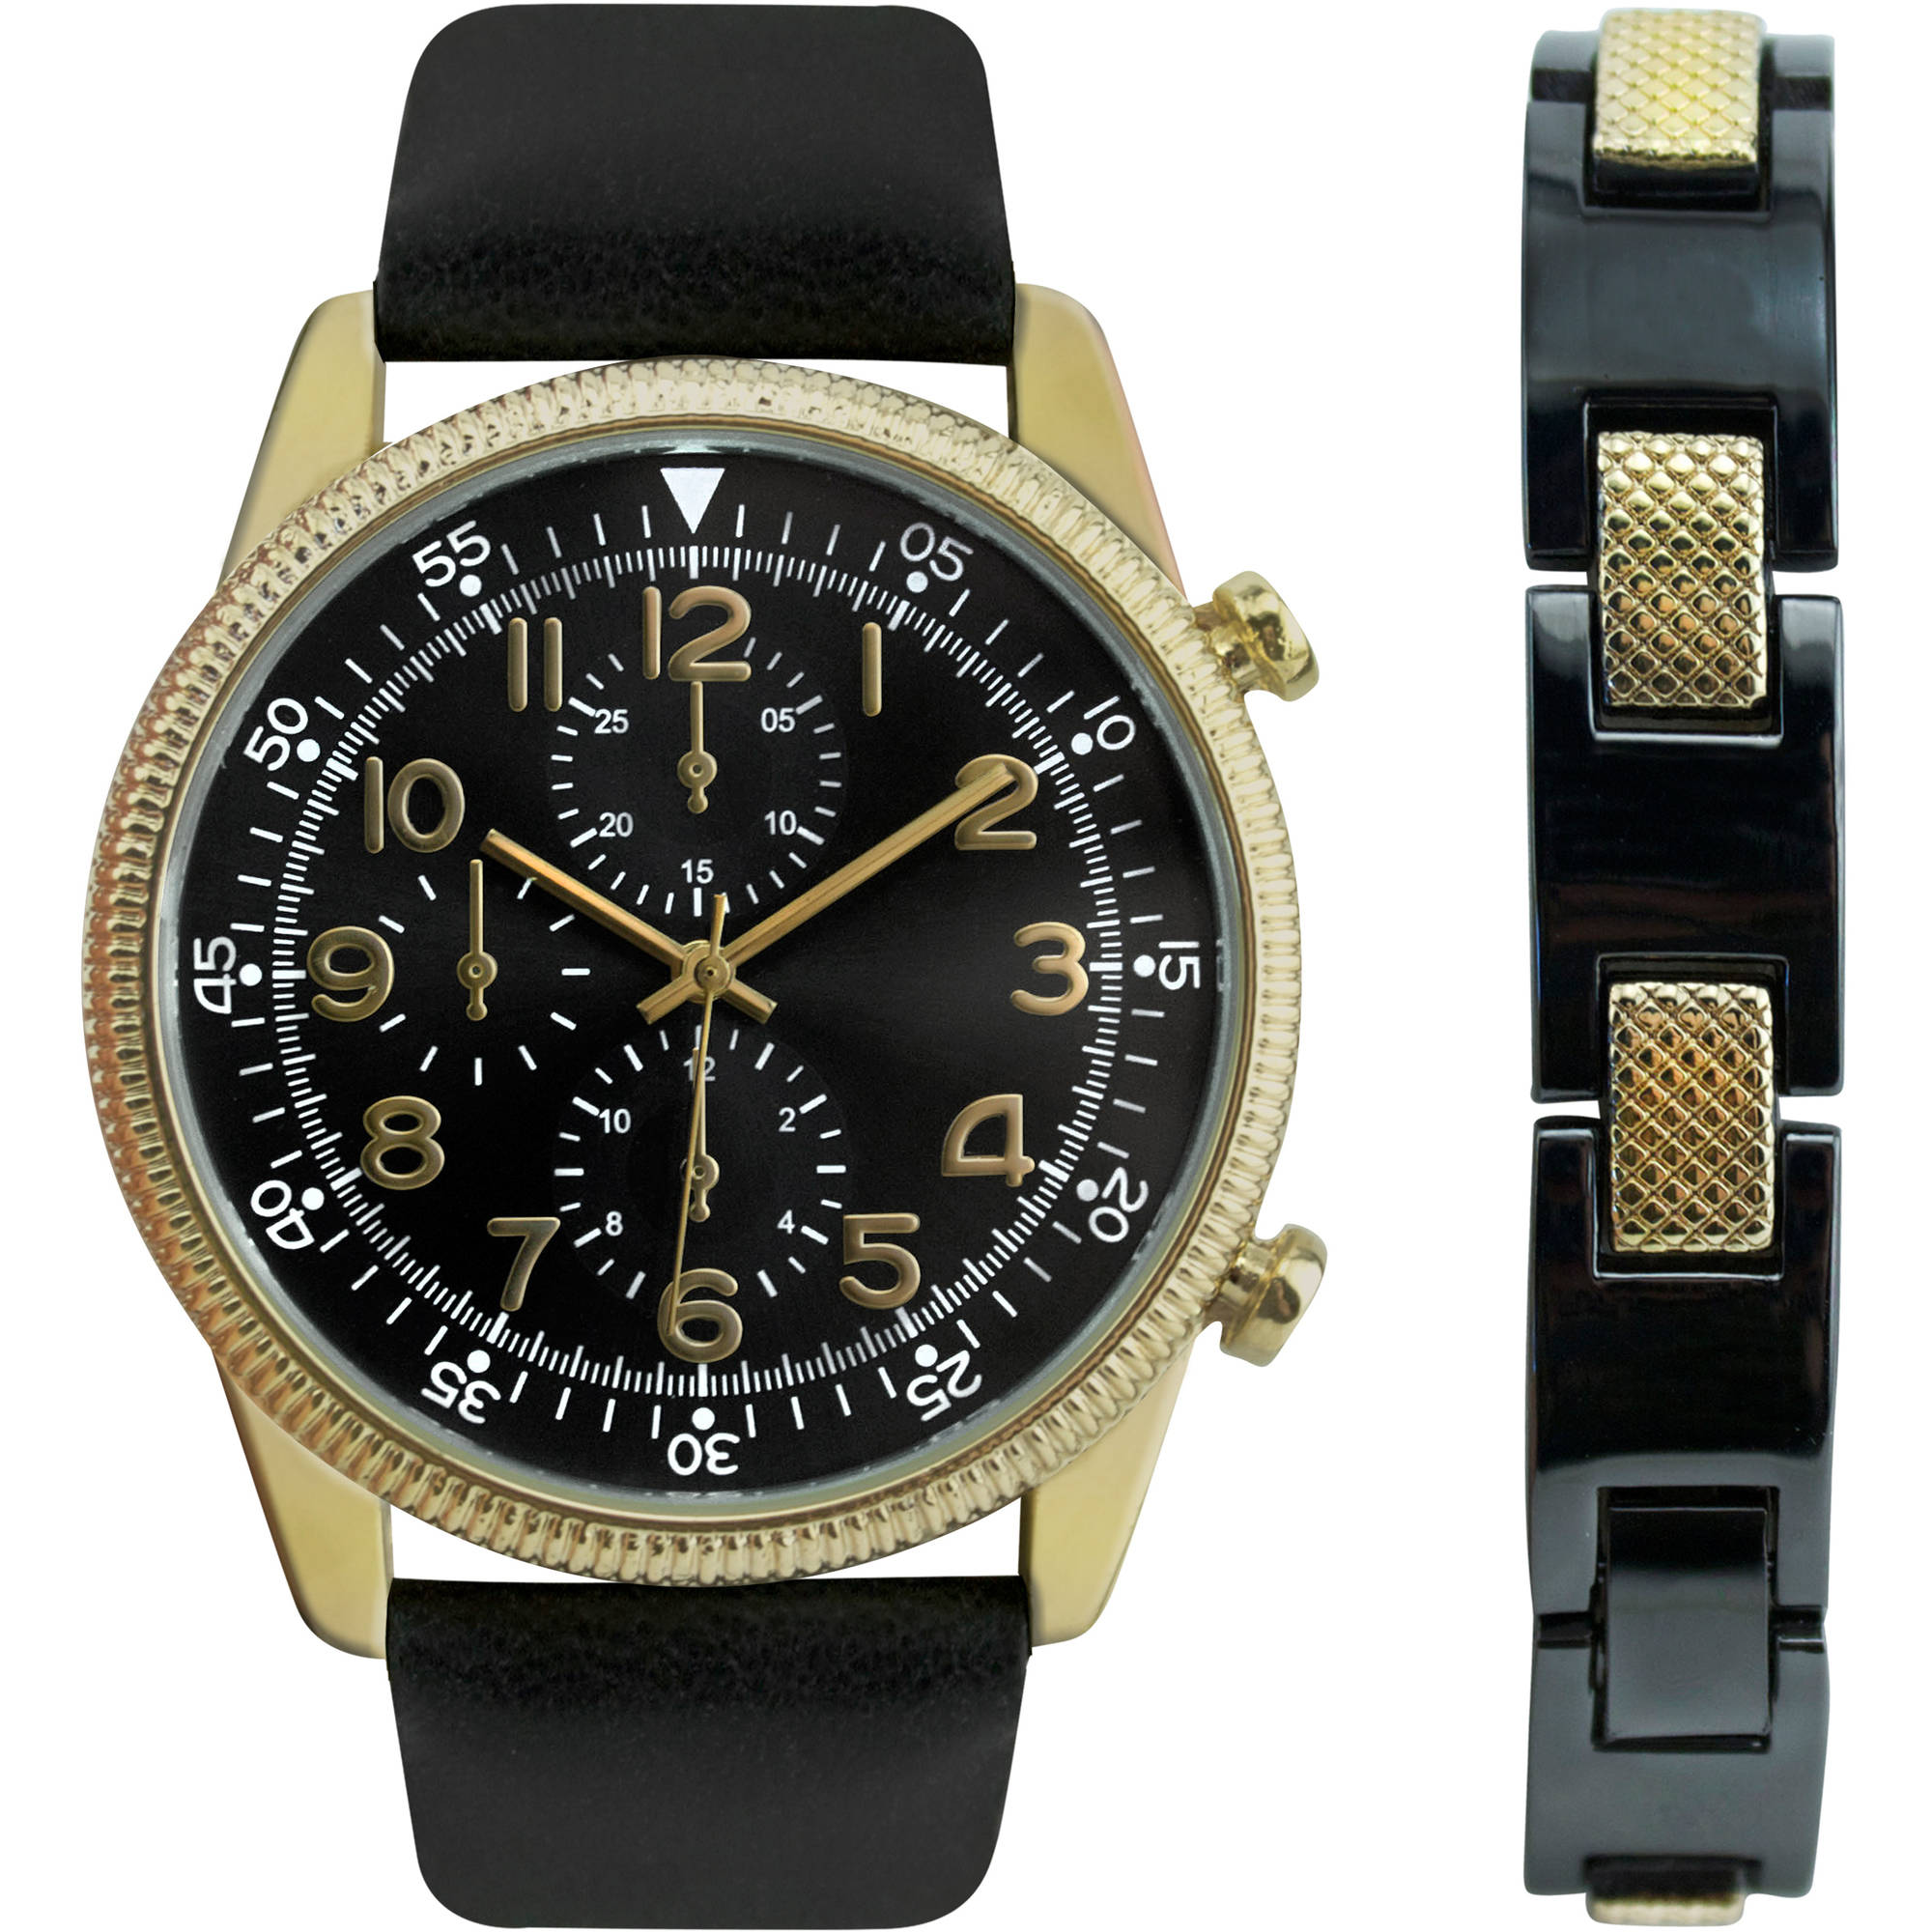 Men's Watch with Black Strap Gift Set and Two-Tone Bracelet